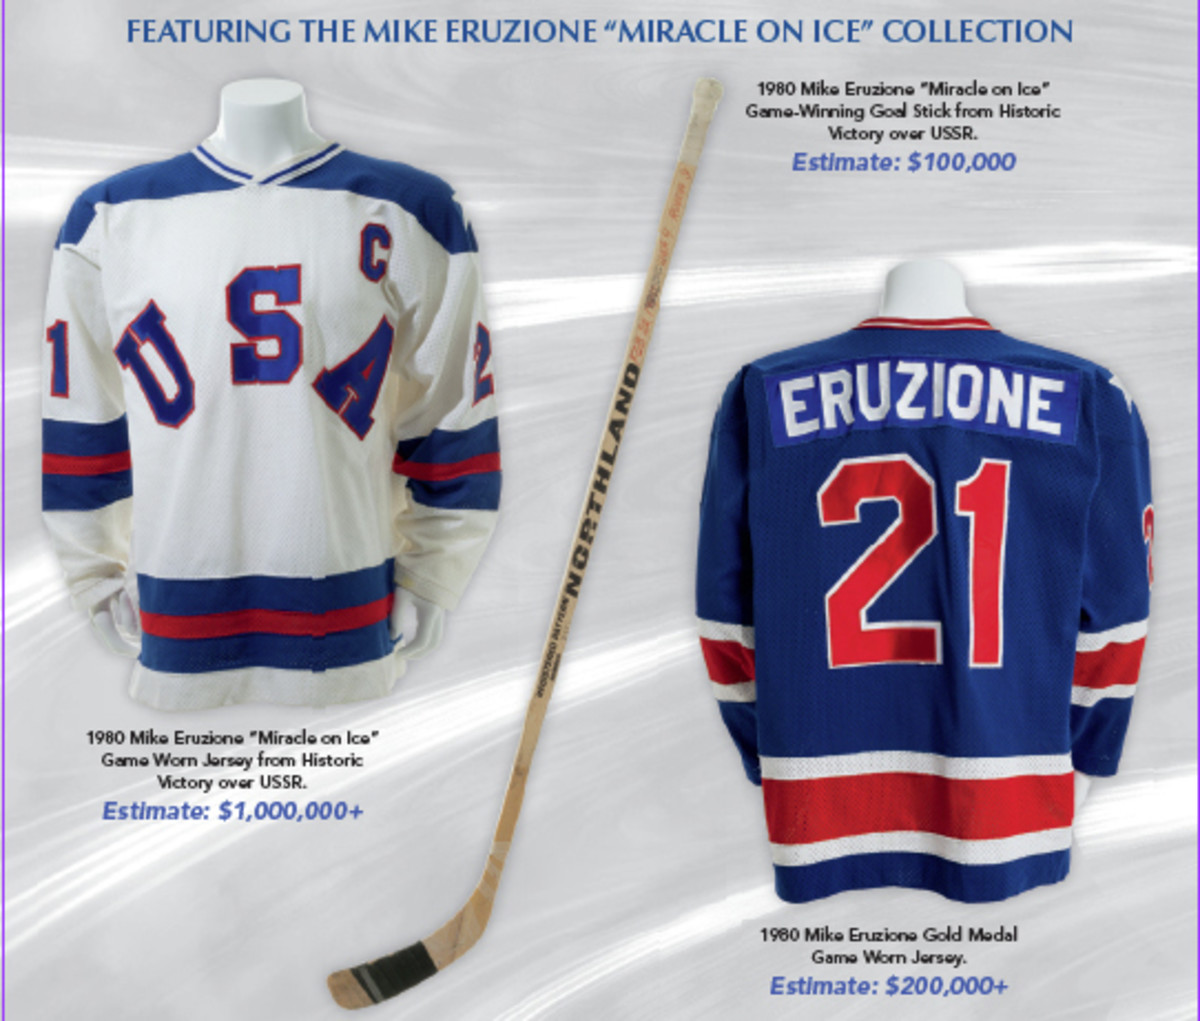 Eruzione collection